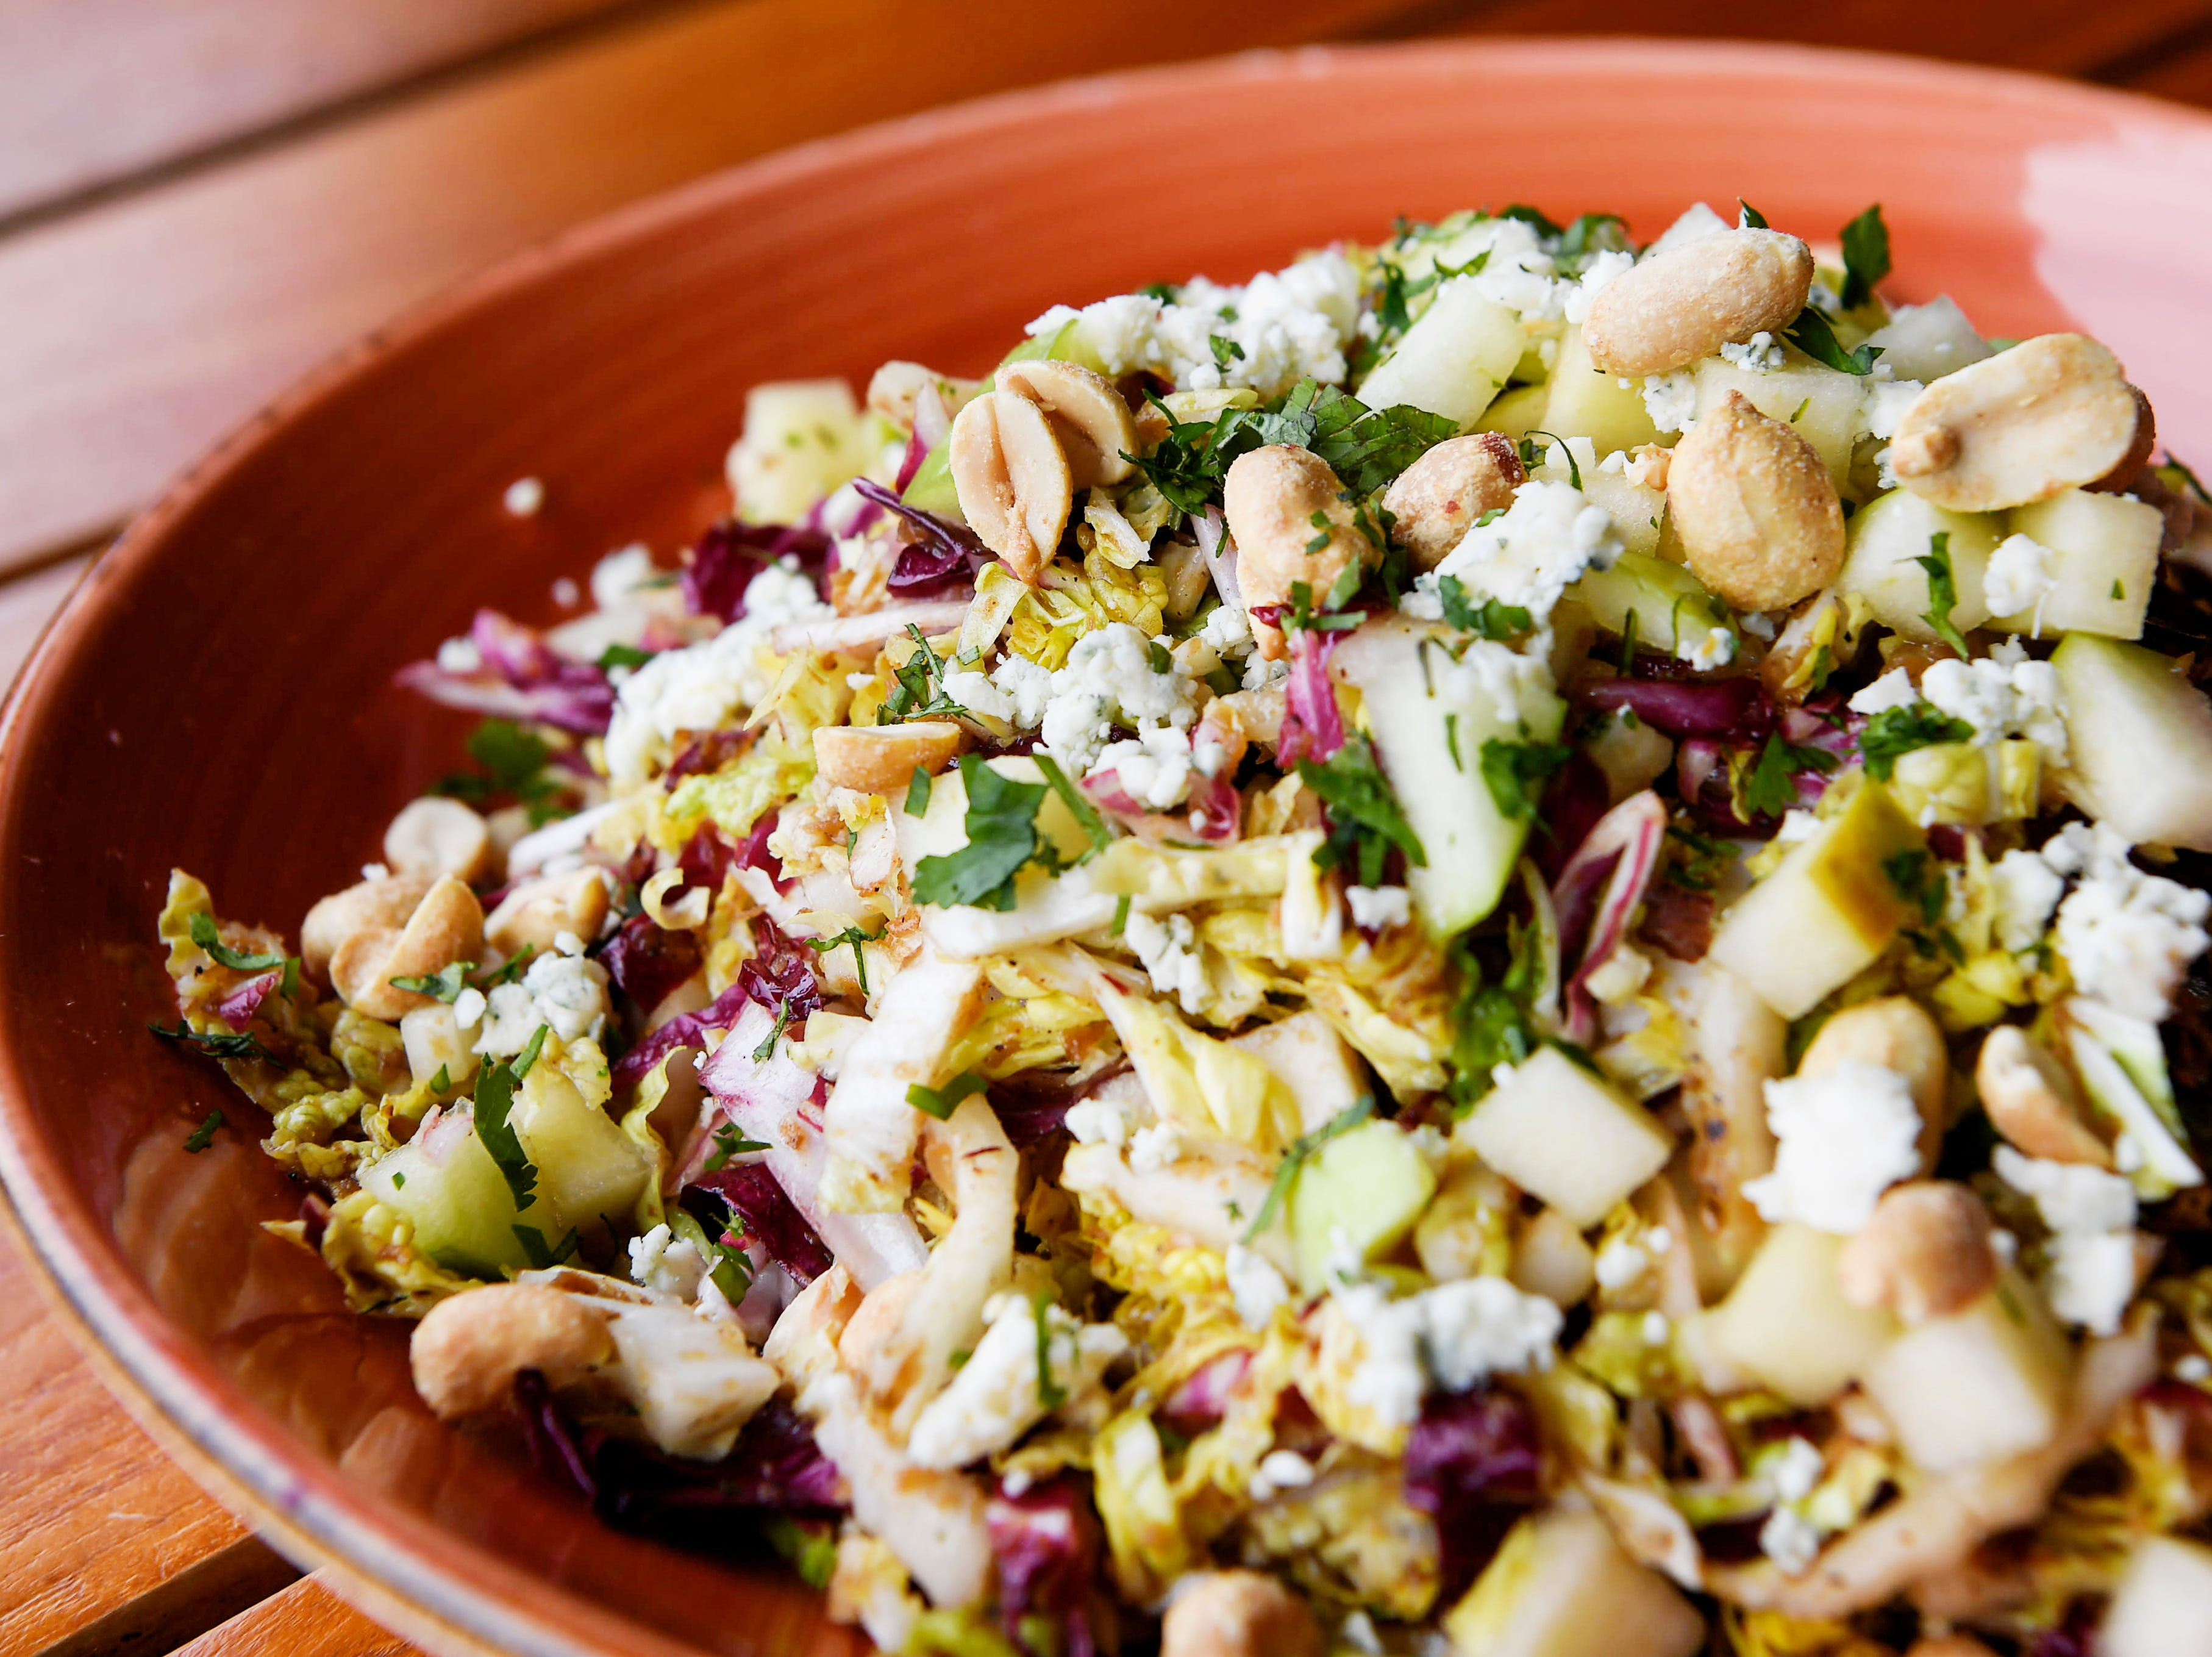 Edison Craft Ales and Kitchen's Napacabbage and apple salad with radicchio, peanuts, smoked blue cheese and charred onion vinaigrette.